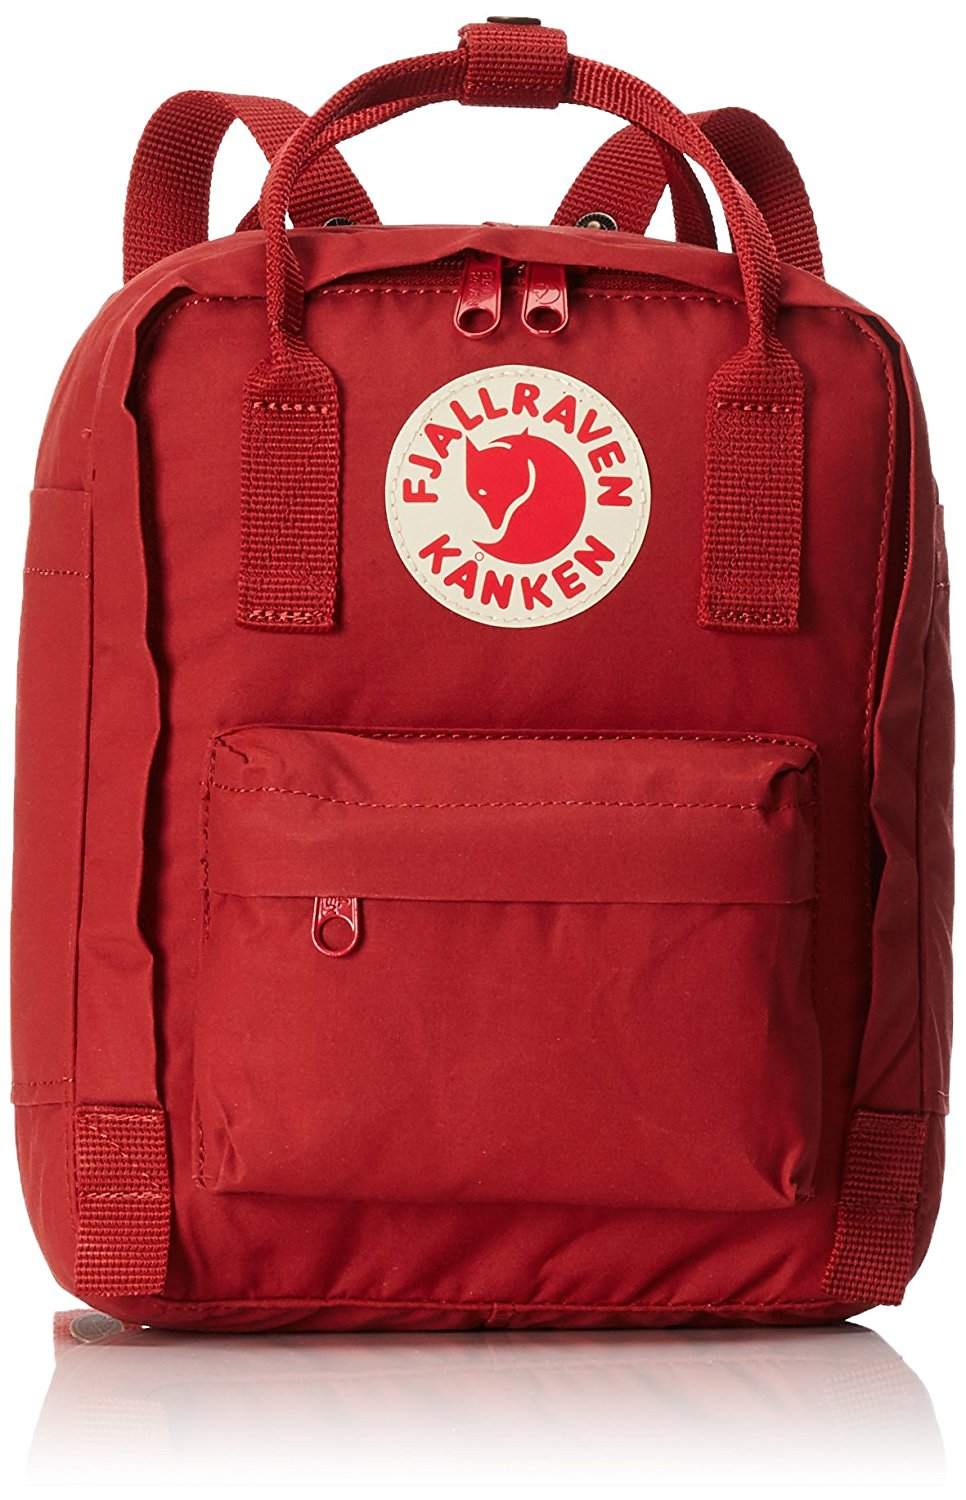 Fjallraven Kanken Backpack found on Amazon.